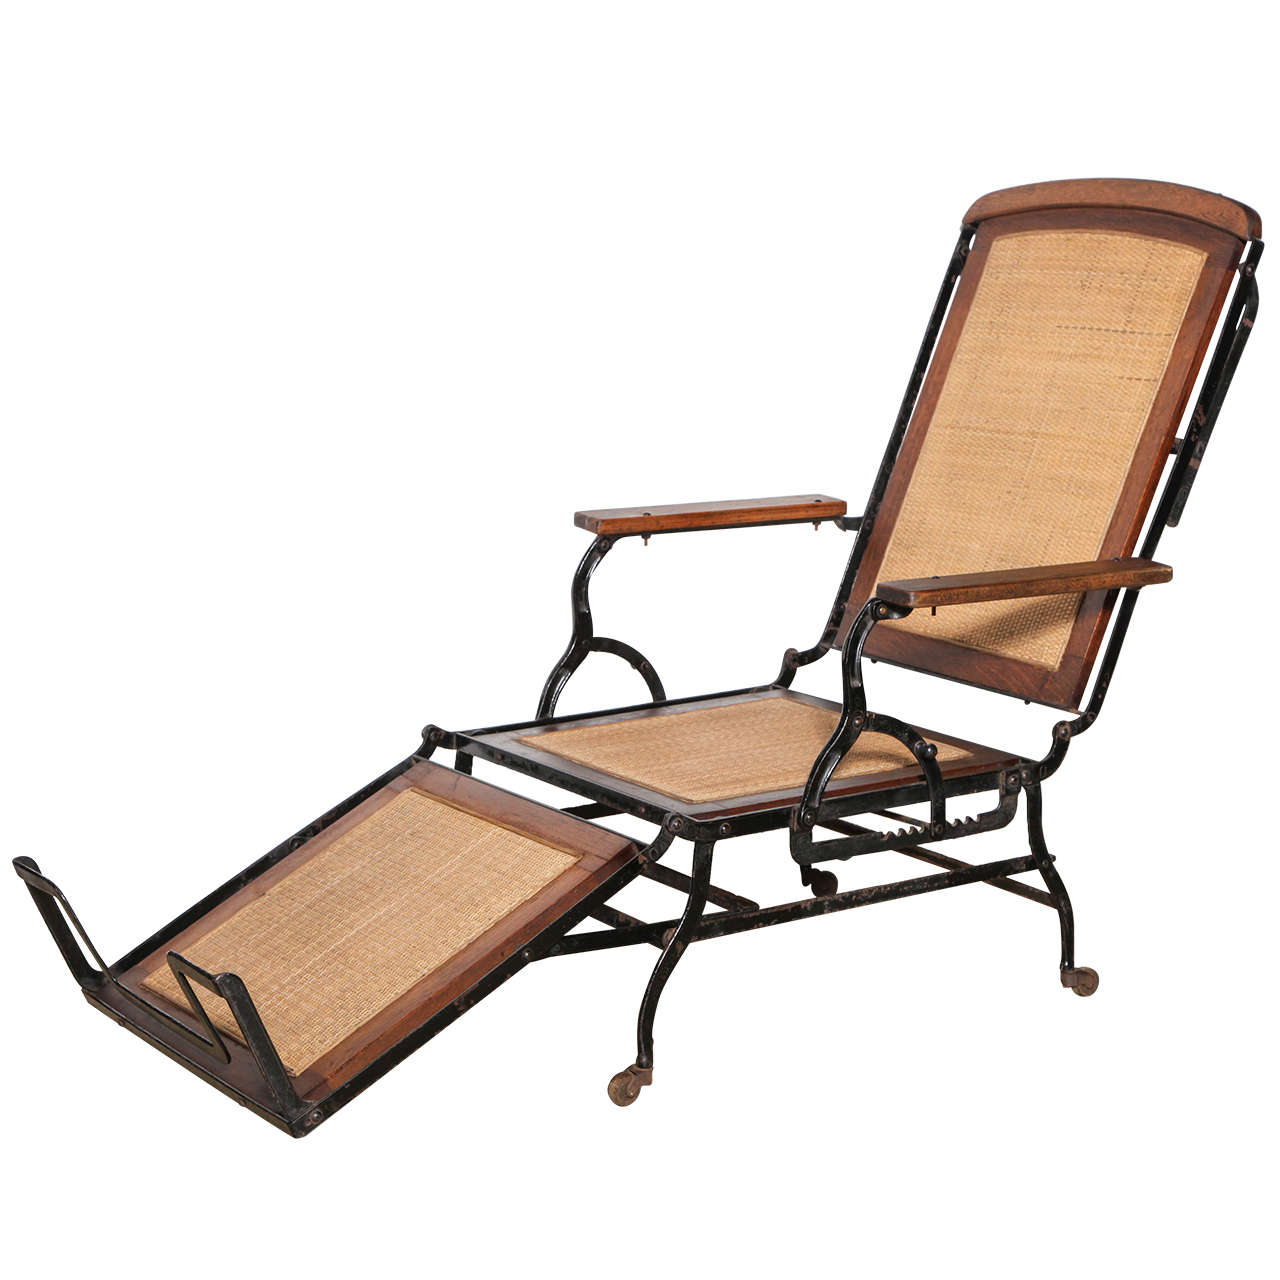 Circa 1876 Rolling Walnut Cane And Black Cast Iron Chaise Lounge Chair For Sale At 1stdibs